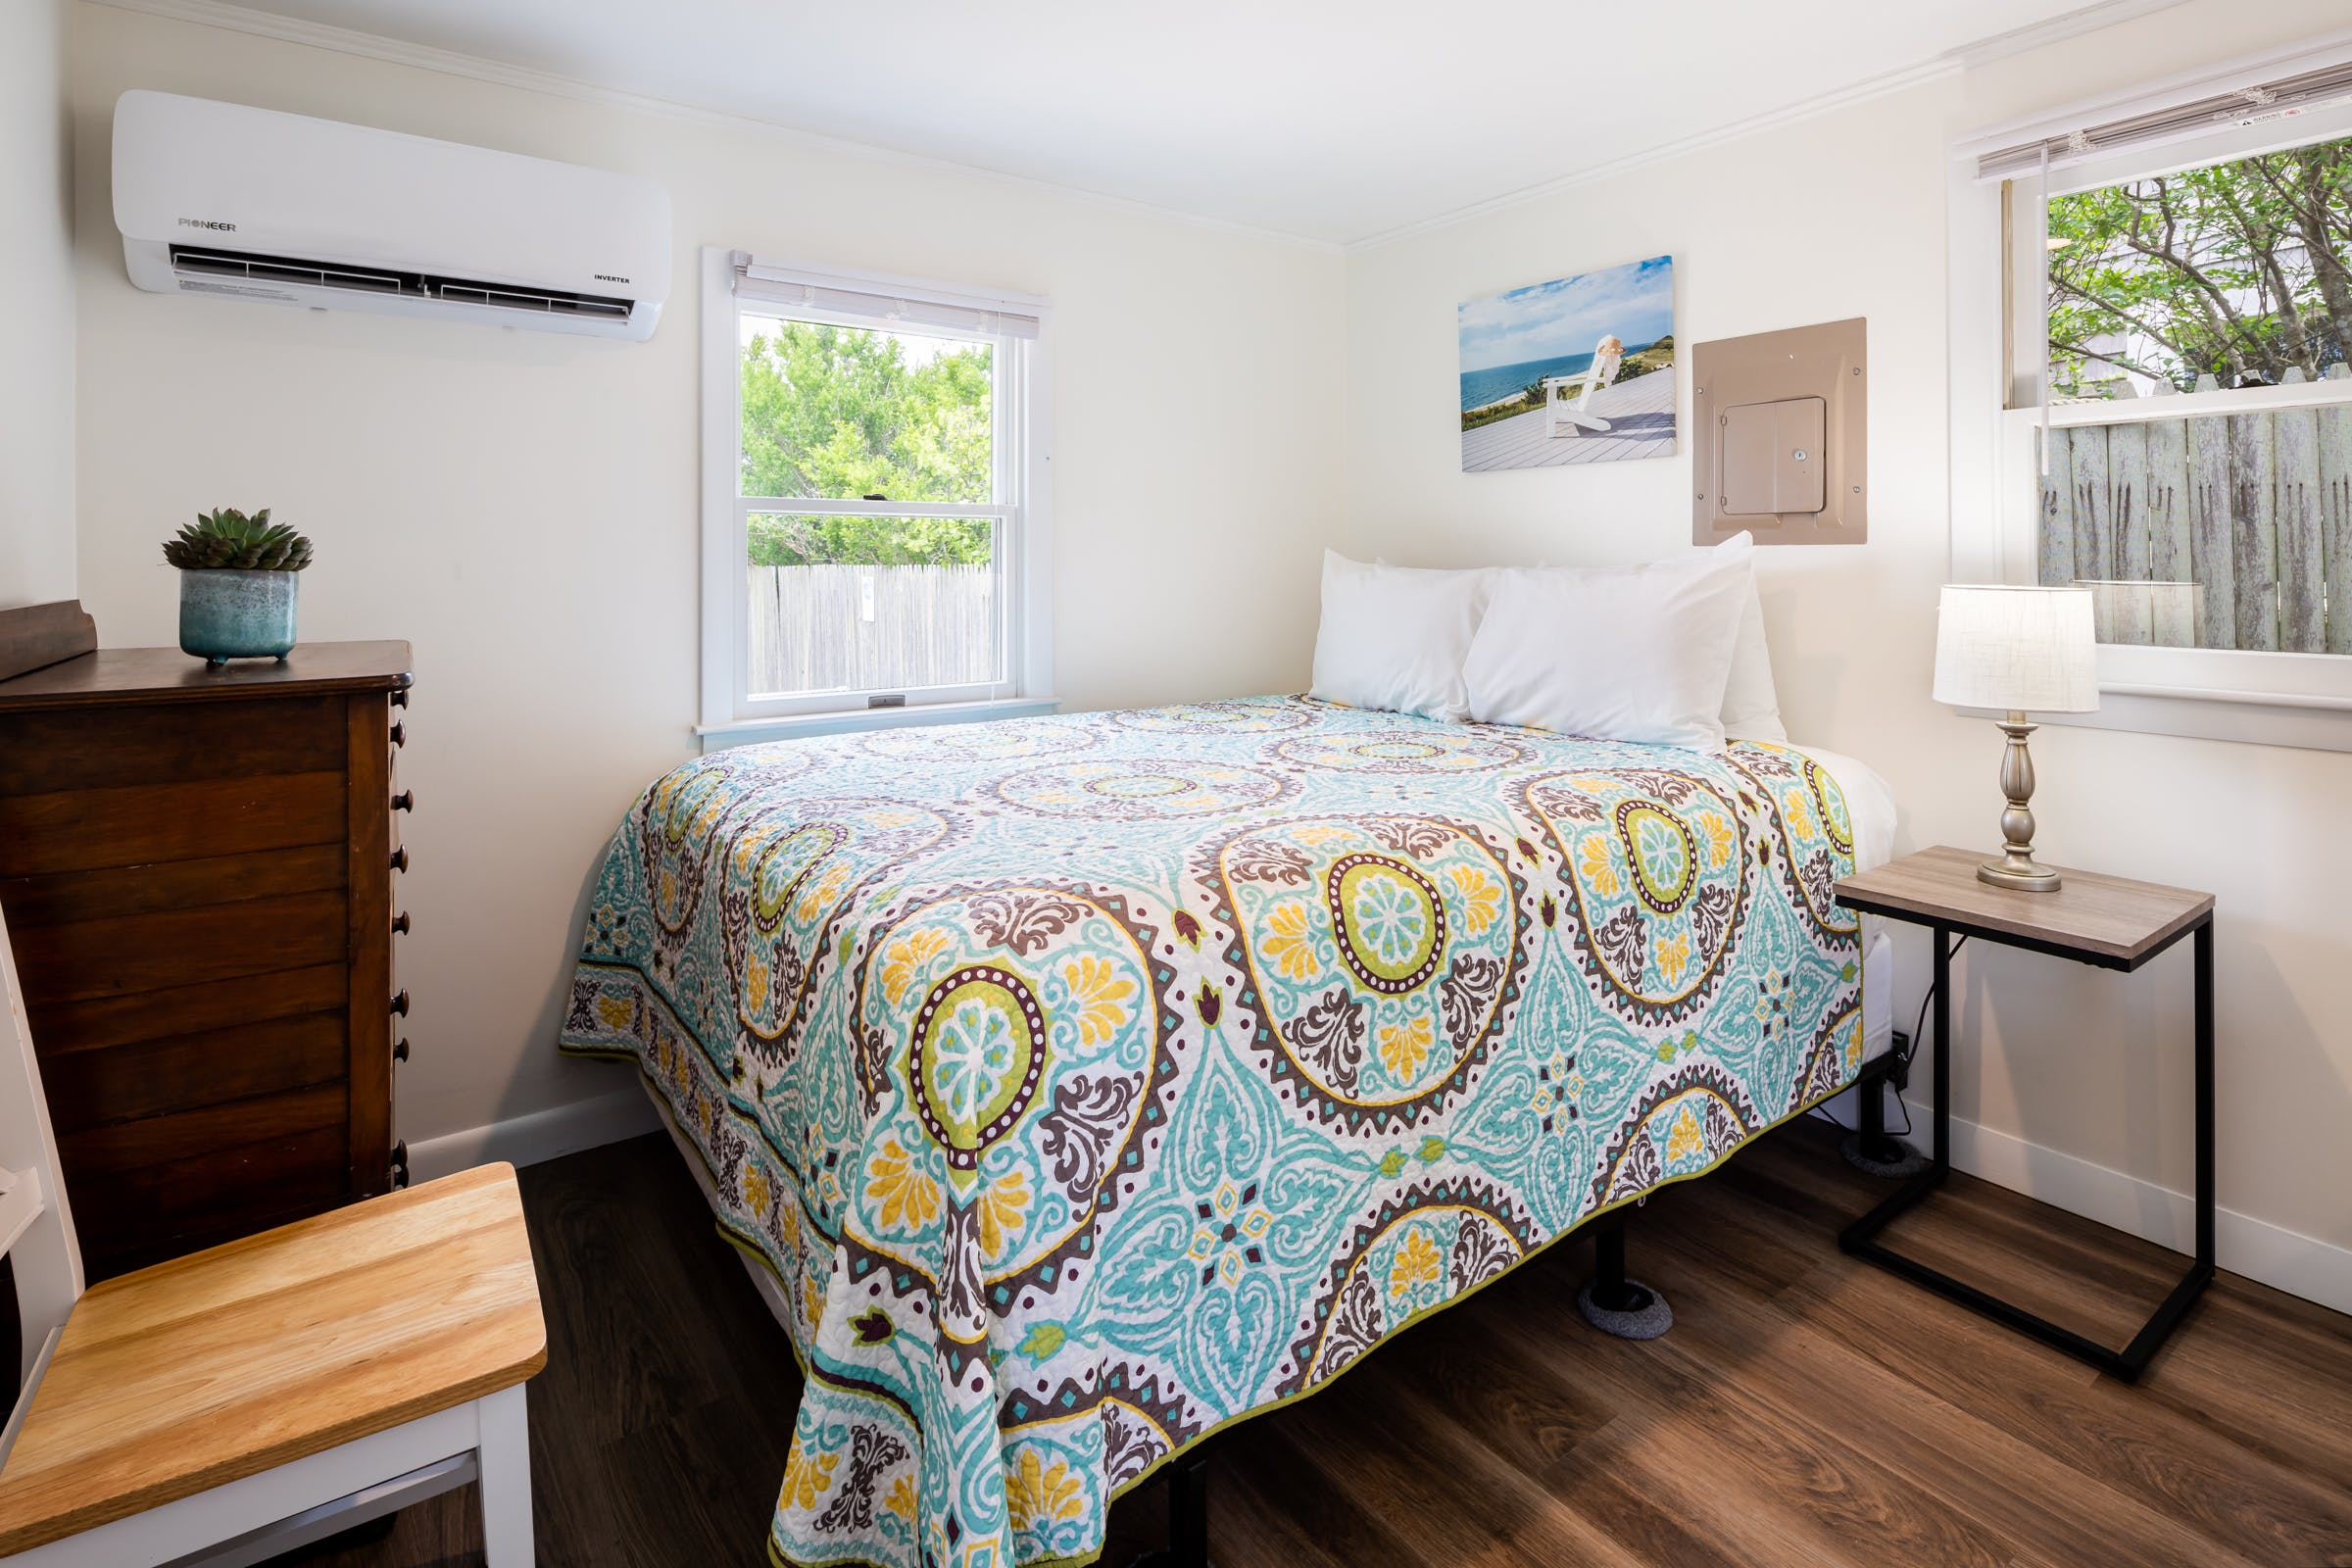 Truro Beach Cottages - Cottage #2 - bedroom